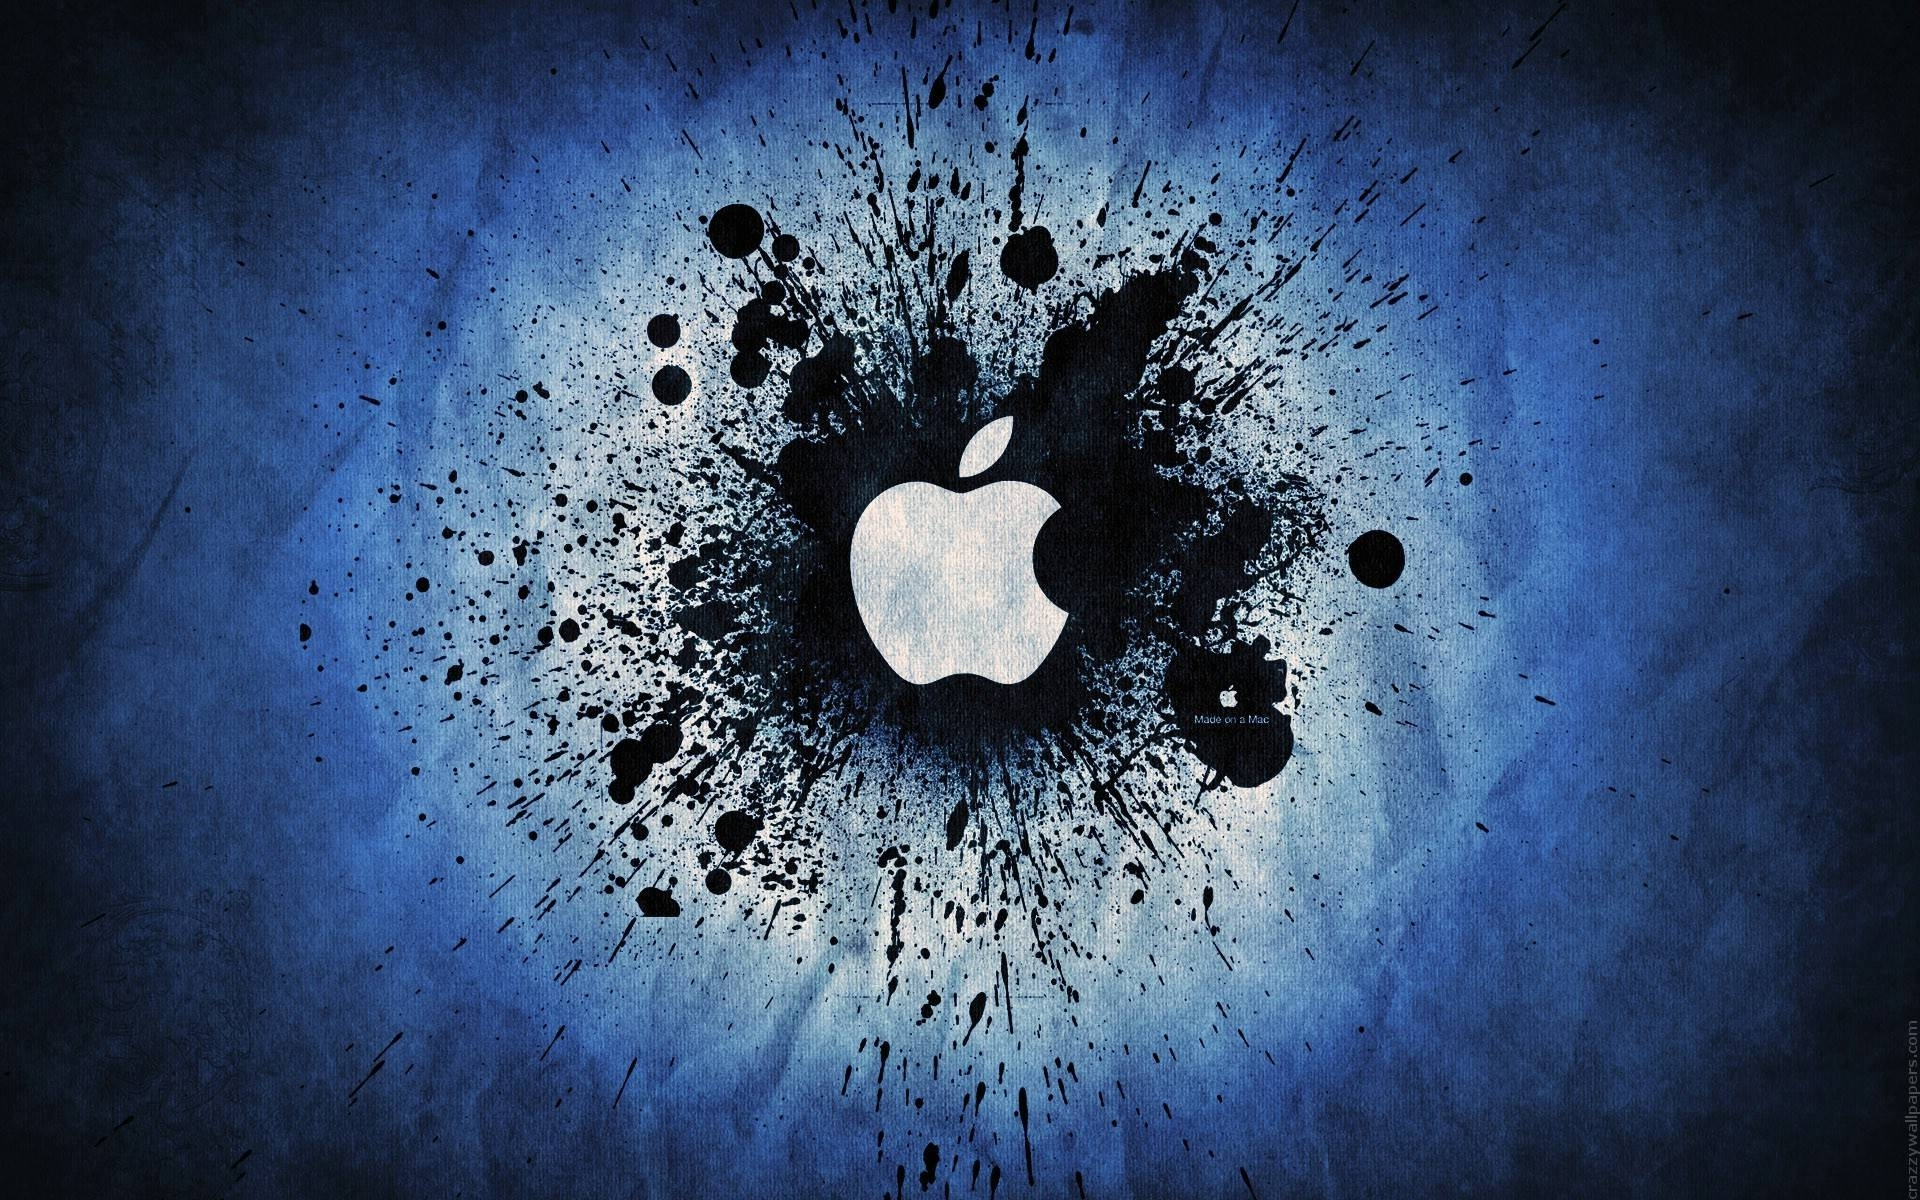 blue apple logo wallpaper, | cool mac wallpaper! | pinterest | apple